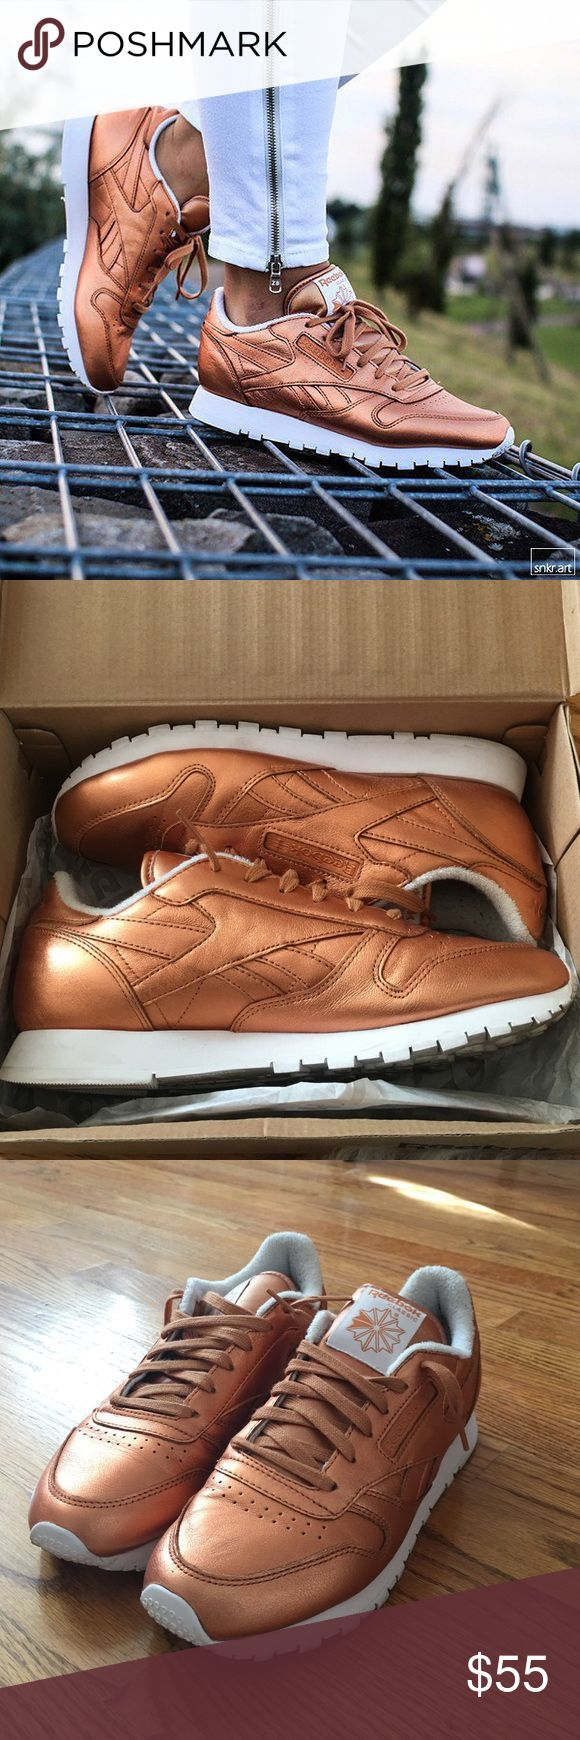 Bronze Reebok Classic Face Stockholm x Reebok Classic Metallic Pack • Only used Twice • Super comfortable • Look great with your favorite pair of jeans Reebok Shoes Sneakers